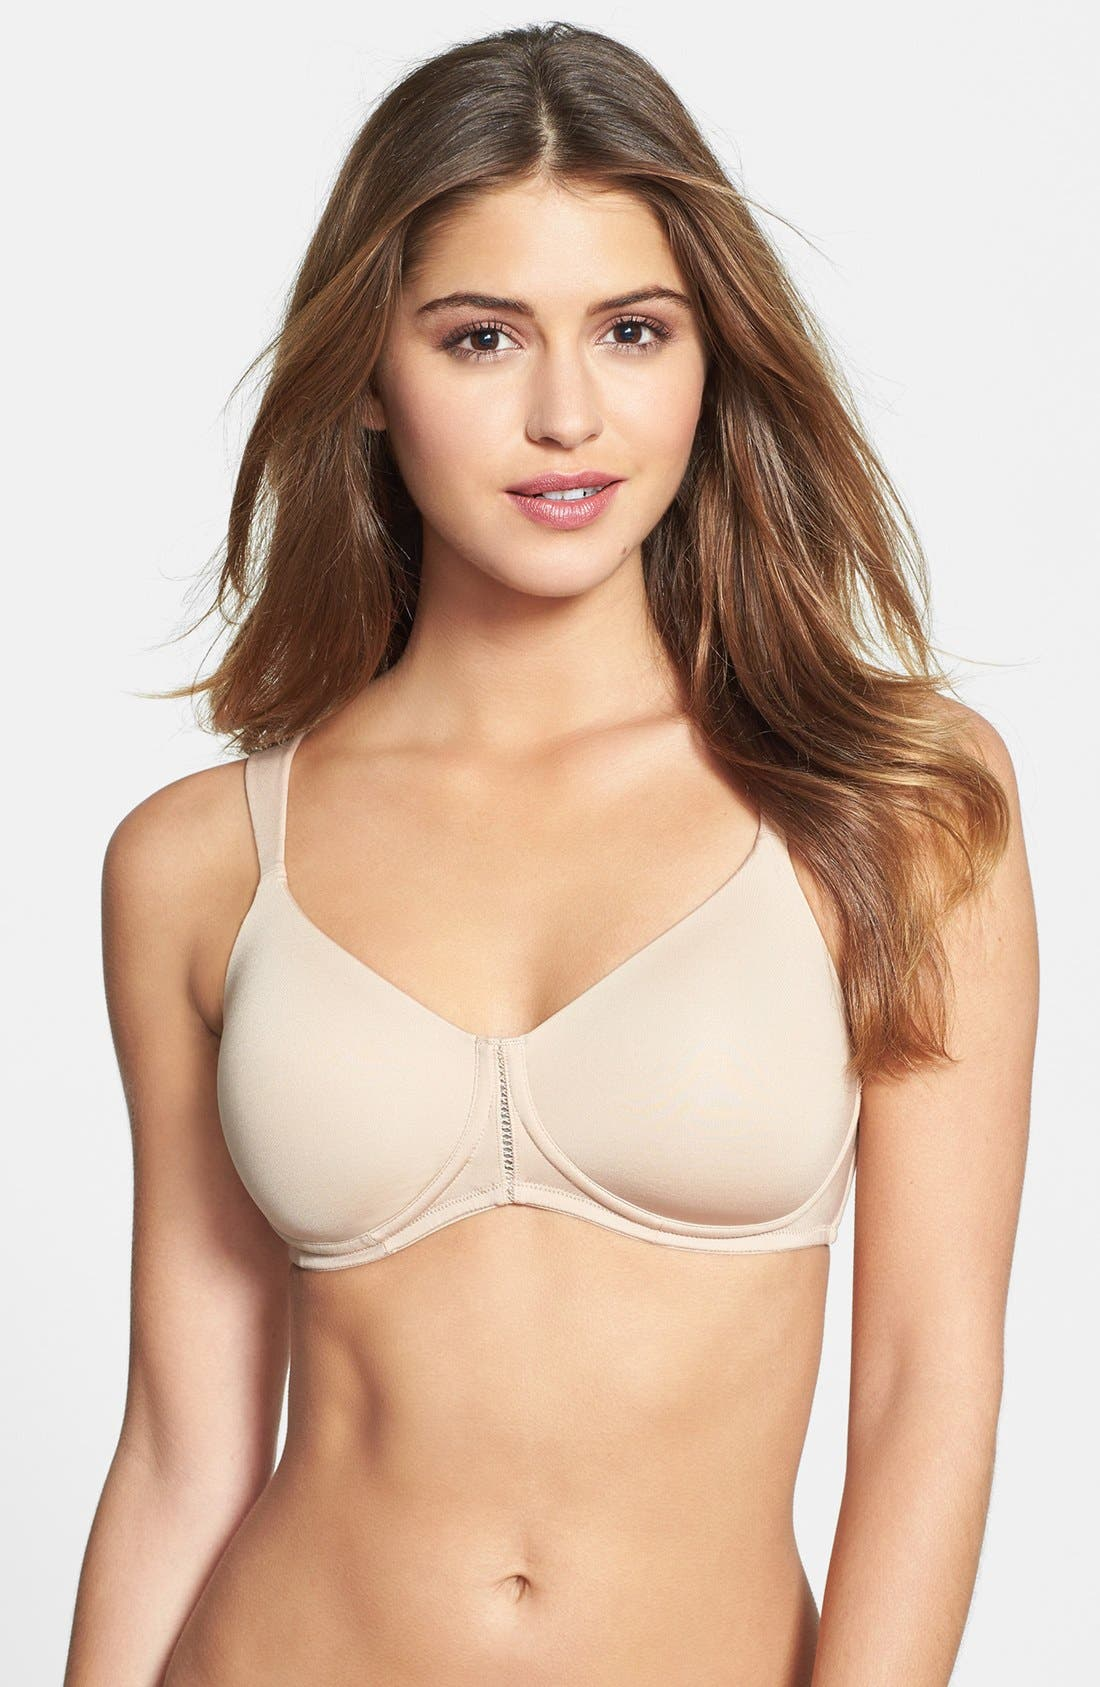 'Lara Comfort' Soft Cup T-Shirt Bra,                             Main thumbnail 1, color,                             Nude